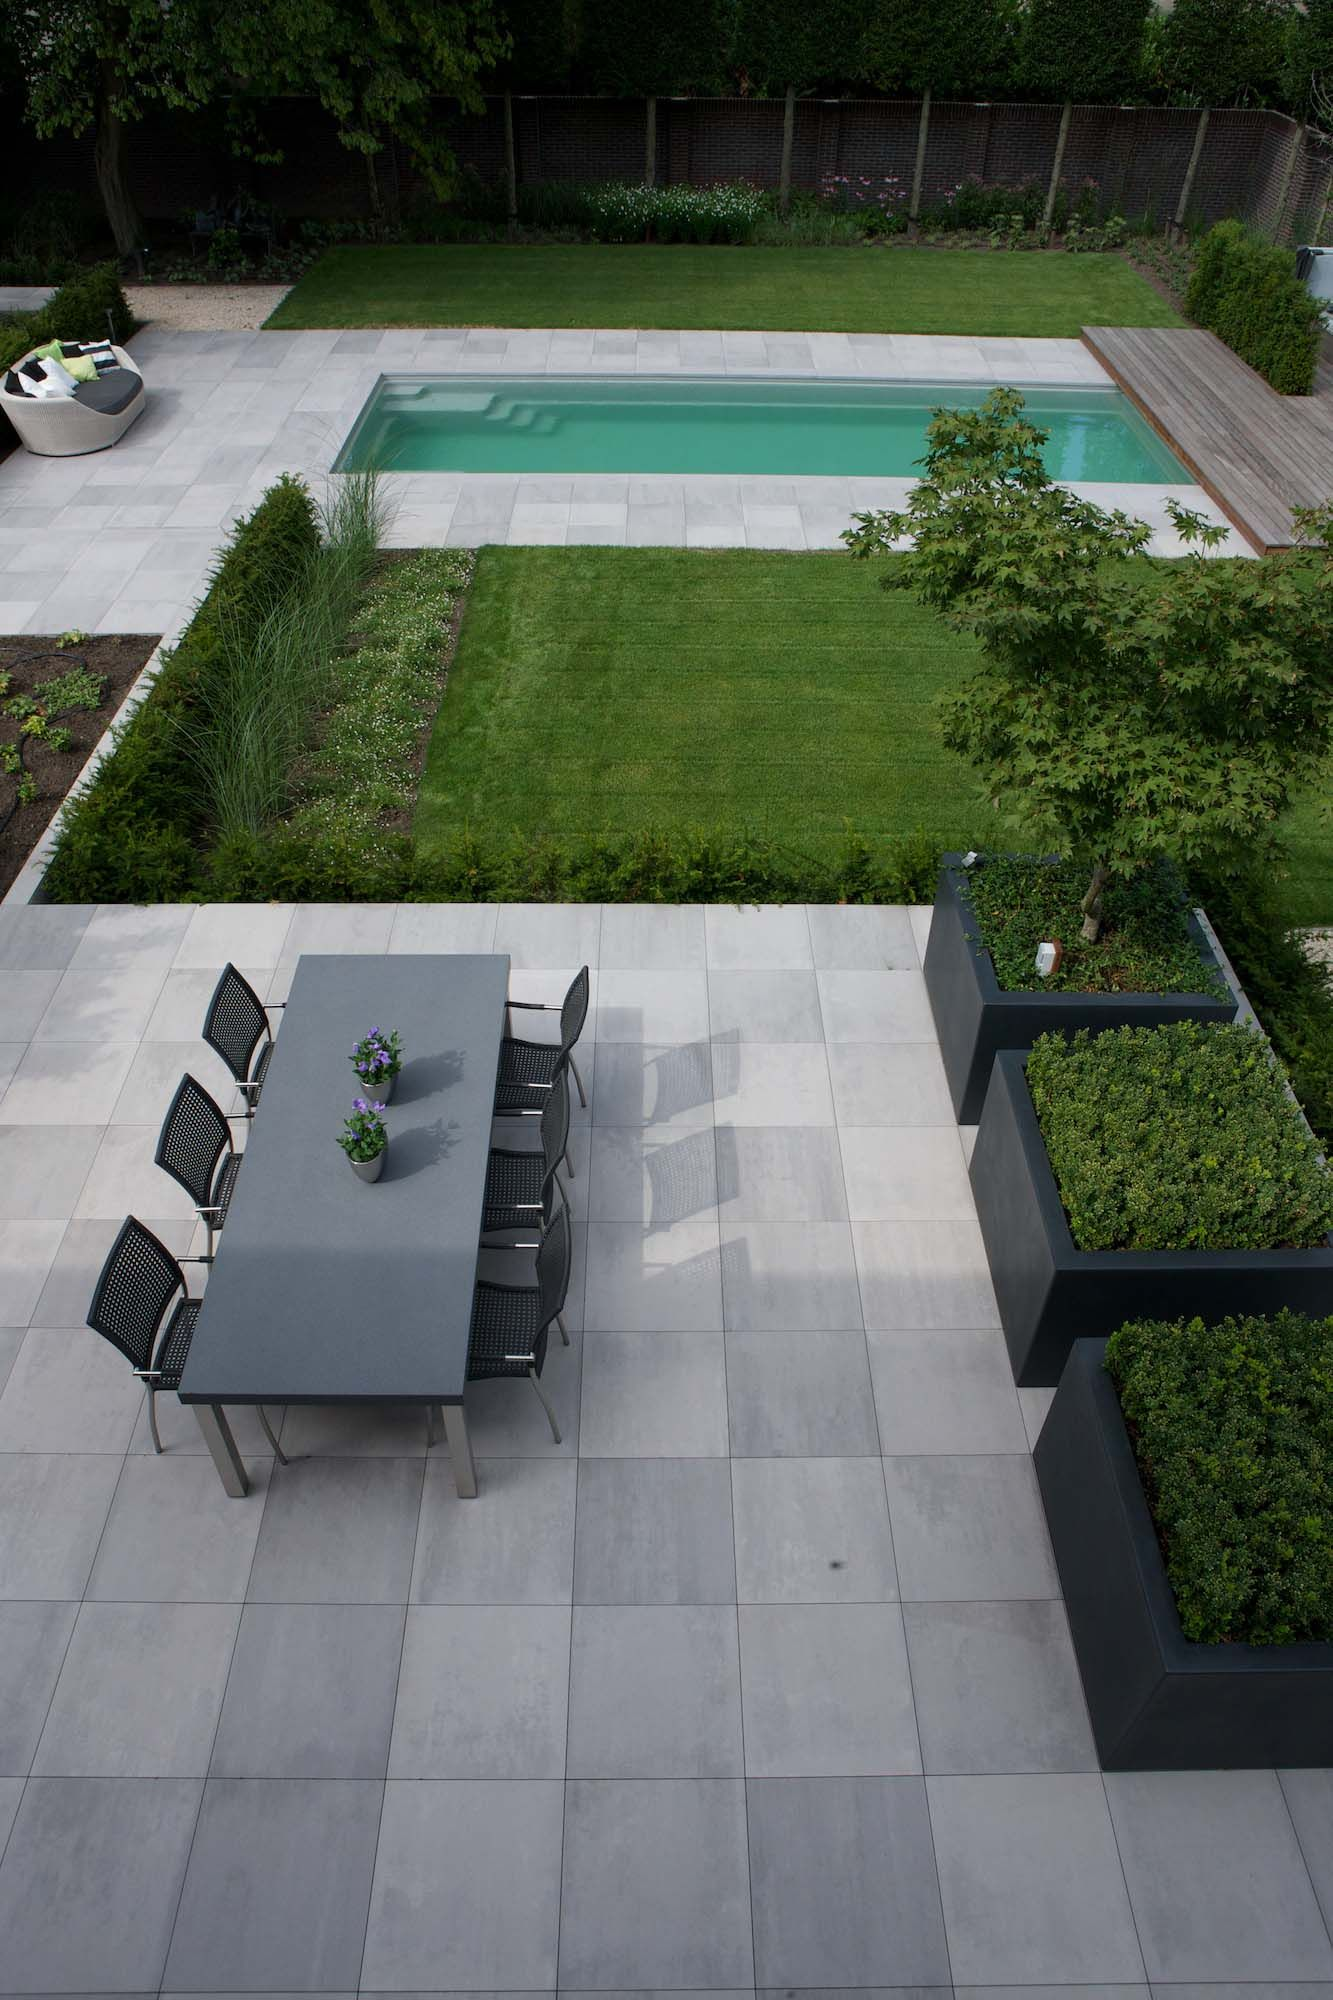 Beautiful Grey Waterproof Flooring Ideas For Living Room: Royal Mosa Tiles, Exterior Tiles Terra Tones